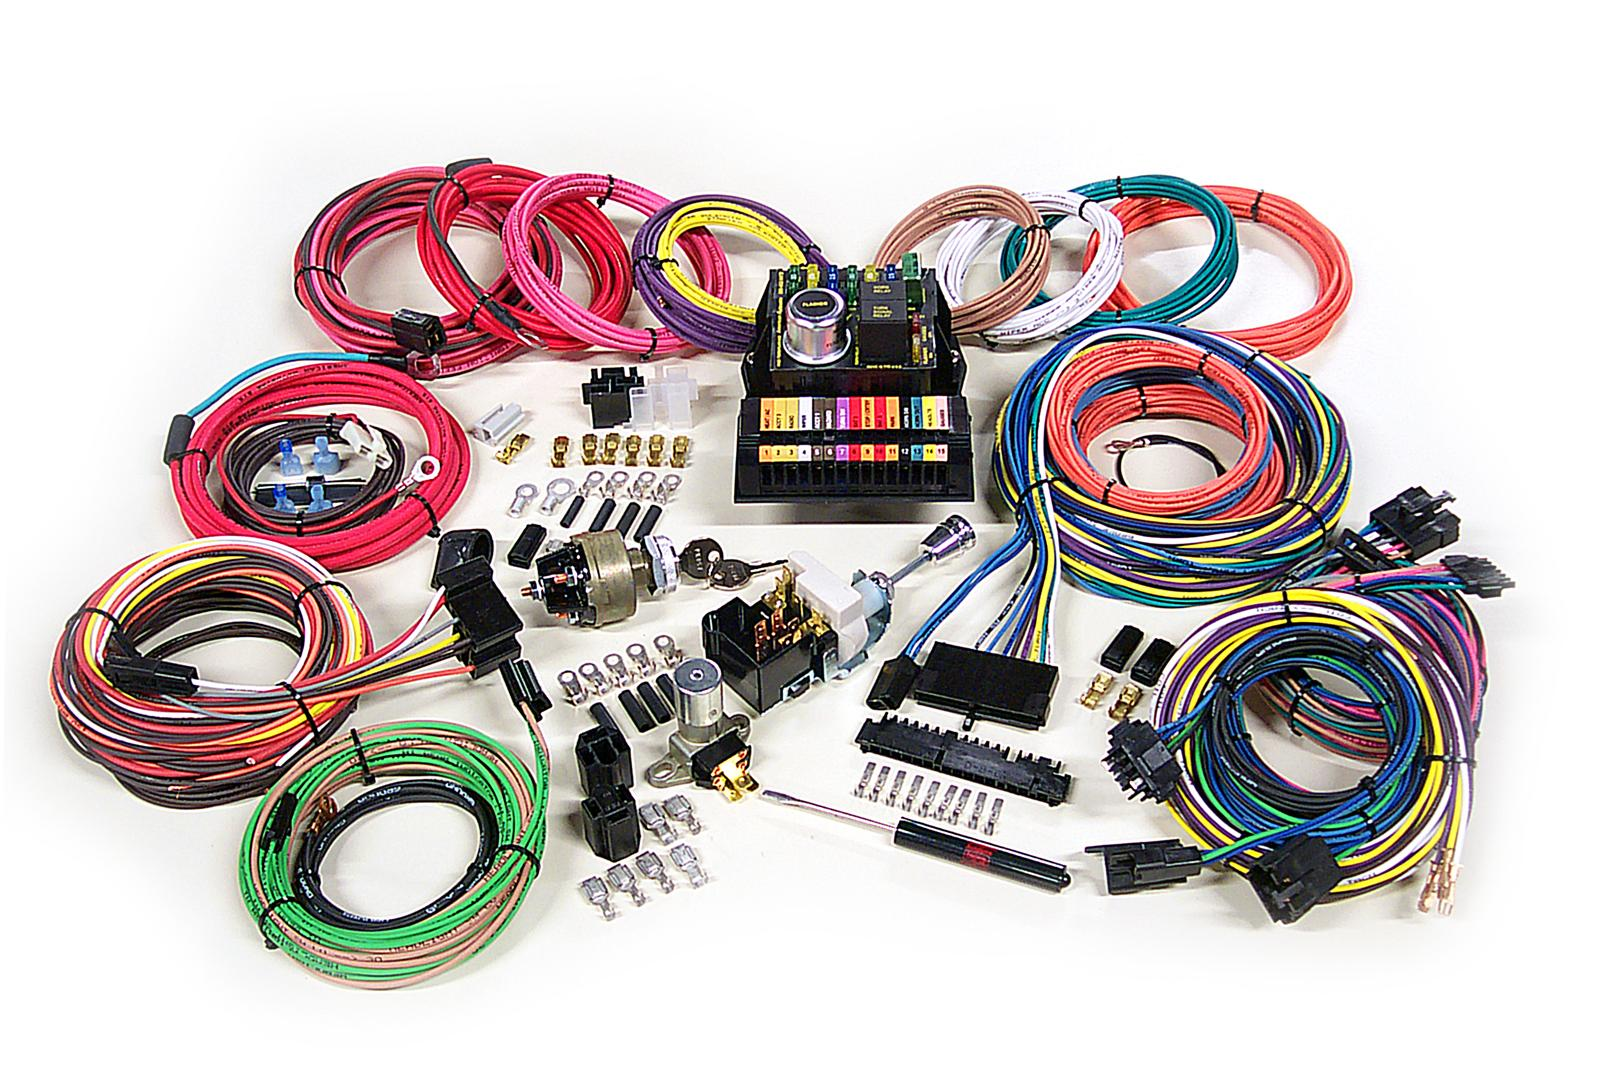 hight resolution of wiring harness kits schema wiring diagram car stereo wiring harness kit american autowire highway 15 wiring